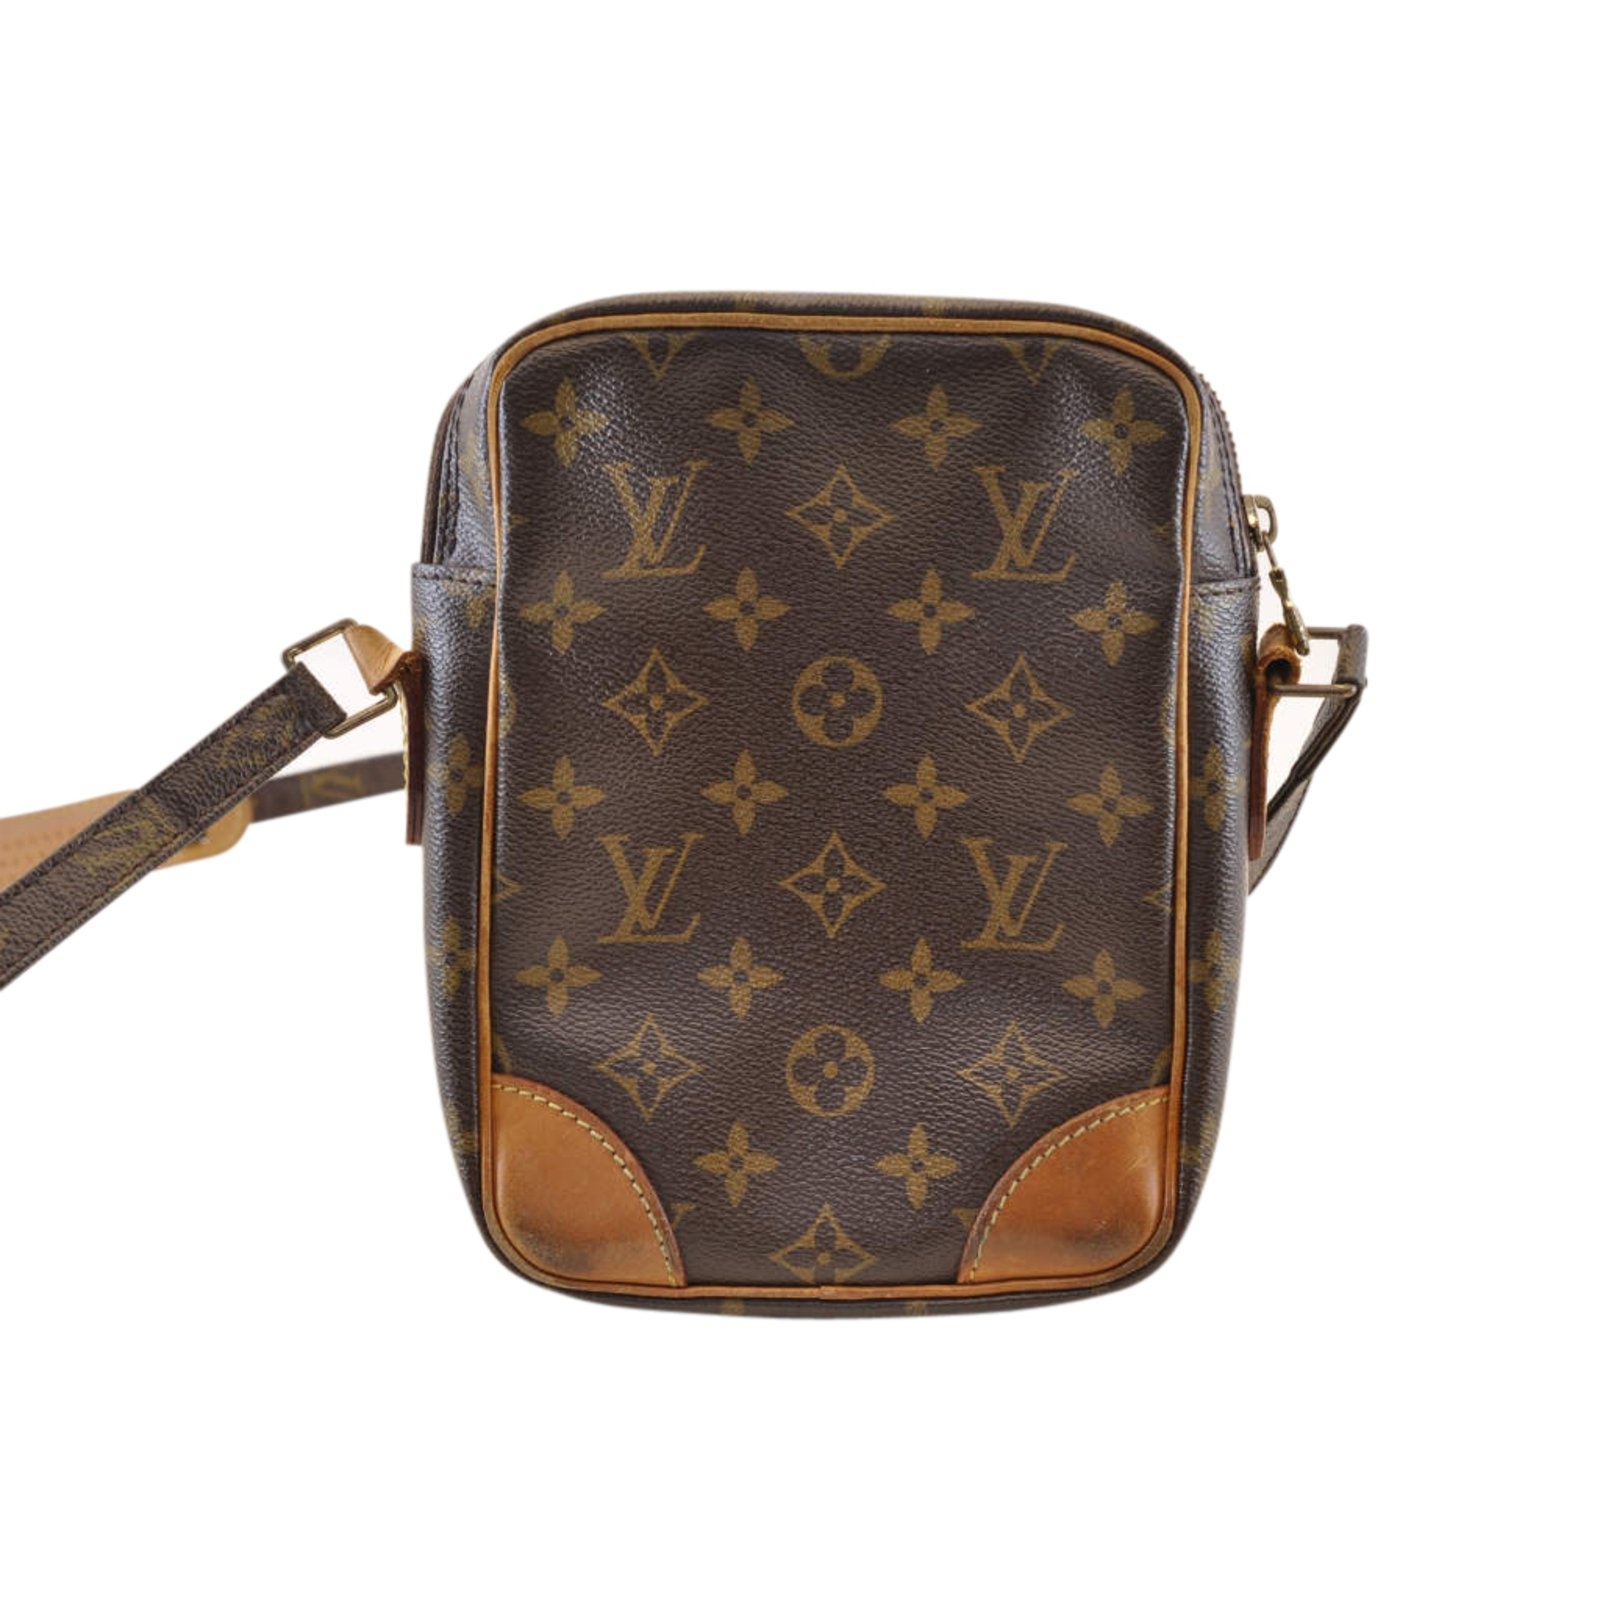 6d1328ba9283 Louis Vuitton Louis Vuitton Monogram Amazon Handbags Cloth Brown ref.103627  - Joli Closet